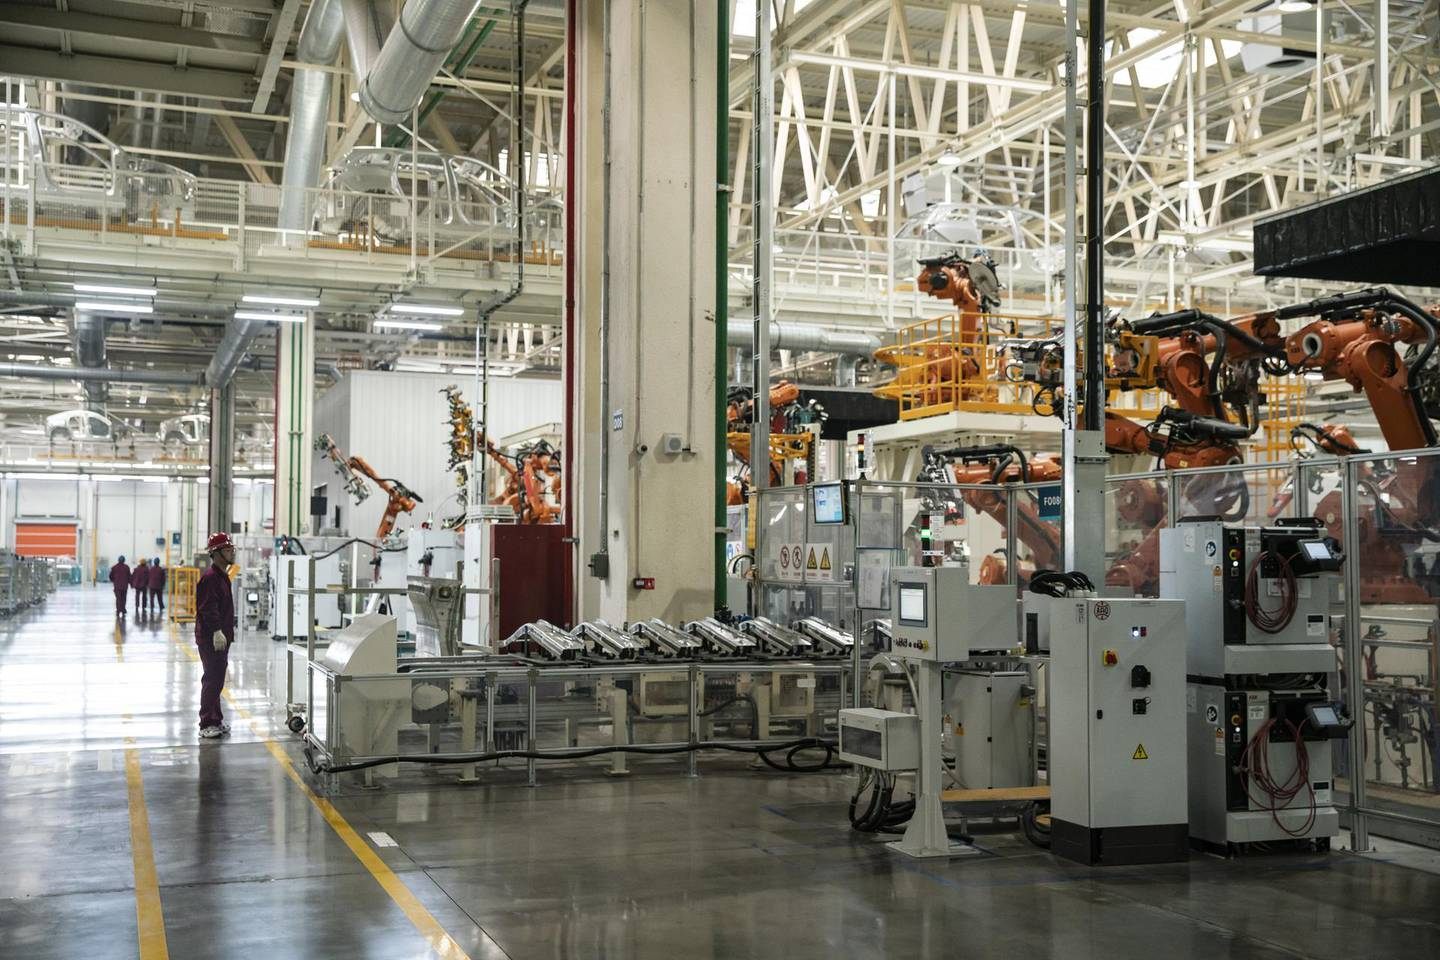 Robotic arms operate on a production line during a media tour of the Nio Inc. production facility in Hefei, Anhui province, China, on Friday, Dec. 4, 2020. Nio is cementing its role as a challenger to Tesla Inc. in China's premium electric-vehicle segment, with both companies benefiting as the coronavirus pandemic recedes in the country. Photographer: Qilai Shen/Bloomberg